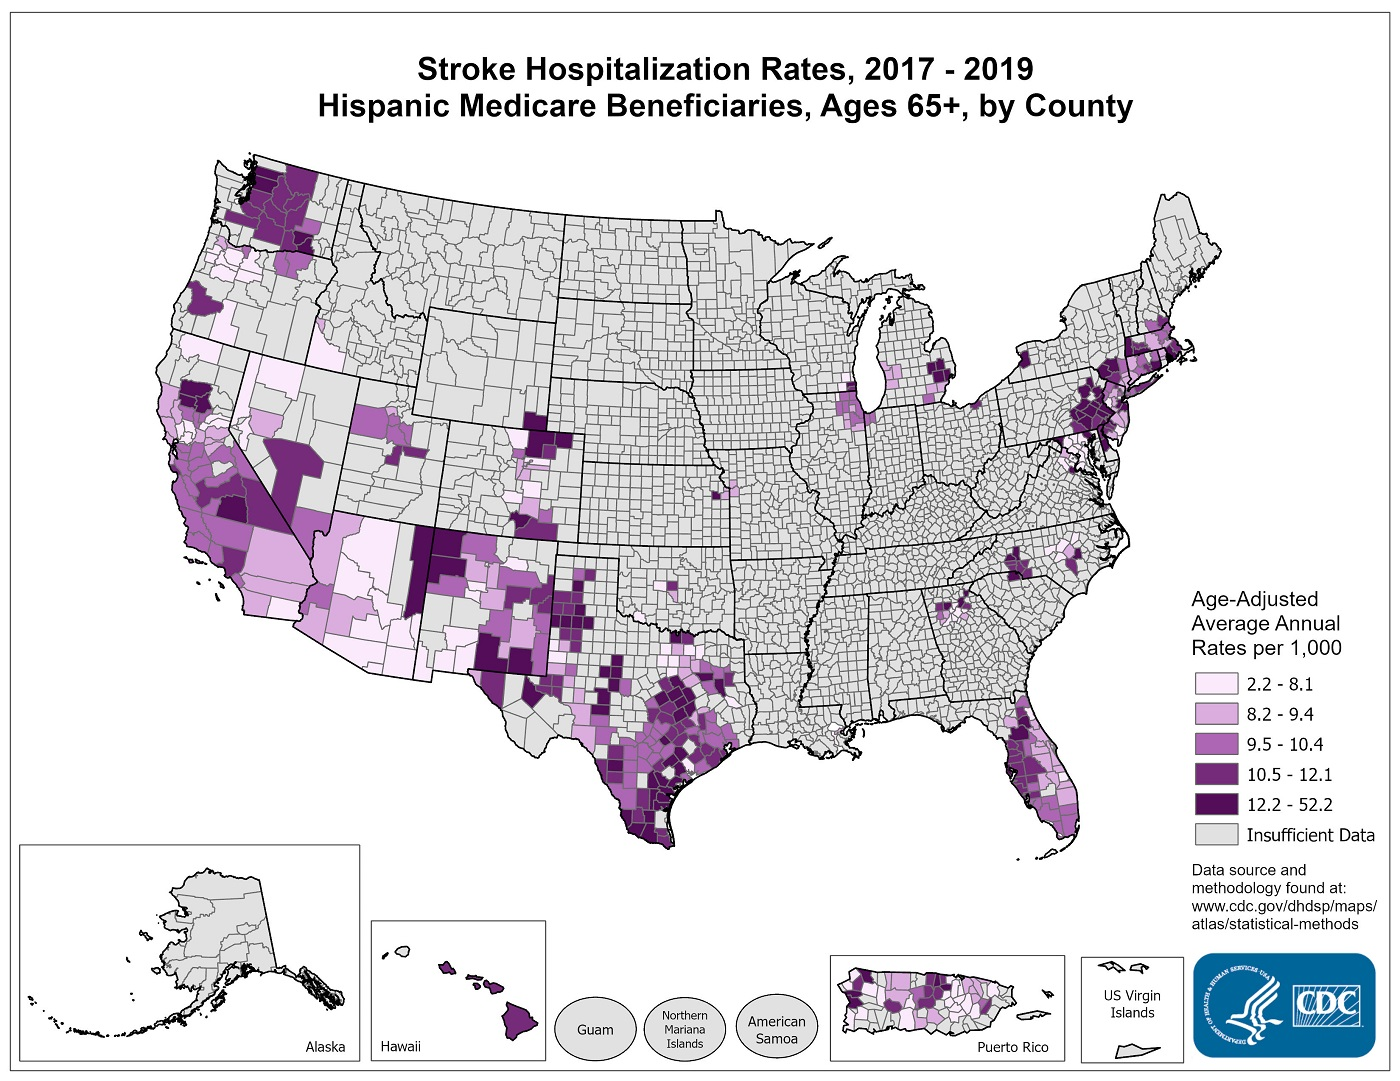 Stroke Hospitalization Rates for 2010 through 2012 for Hispanics Aged 65 Years and Older by County. The map shows that concentrations of counties with the highest stroke hospitalization rates - meaning the top quintile - are located primarily in Texas, Massachusetts, and New York.